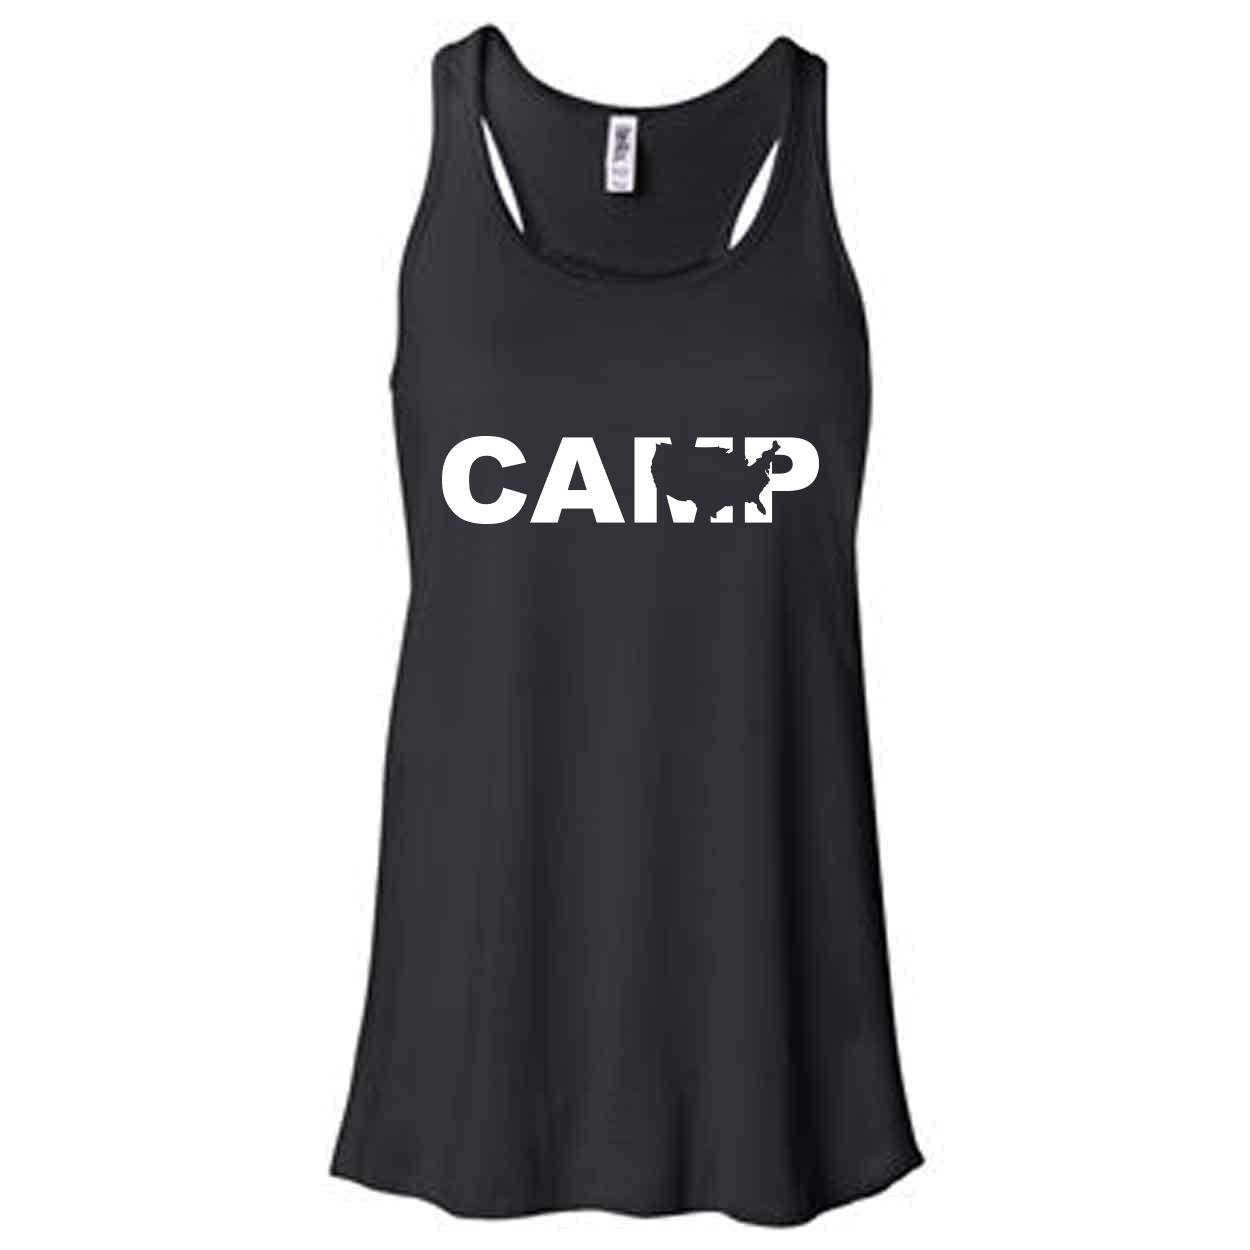 Camp United States Classic Women's Flowy Racerback Tank Top Black (White Logo)